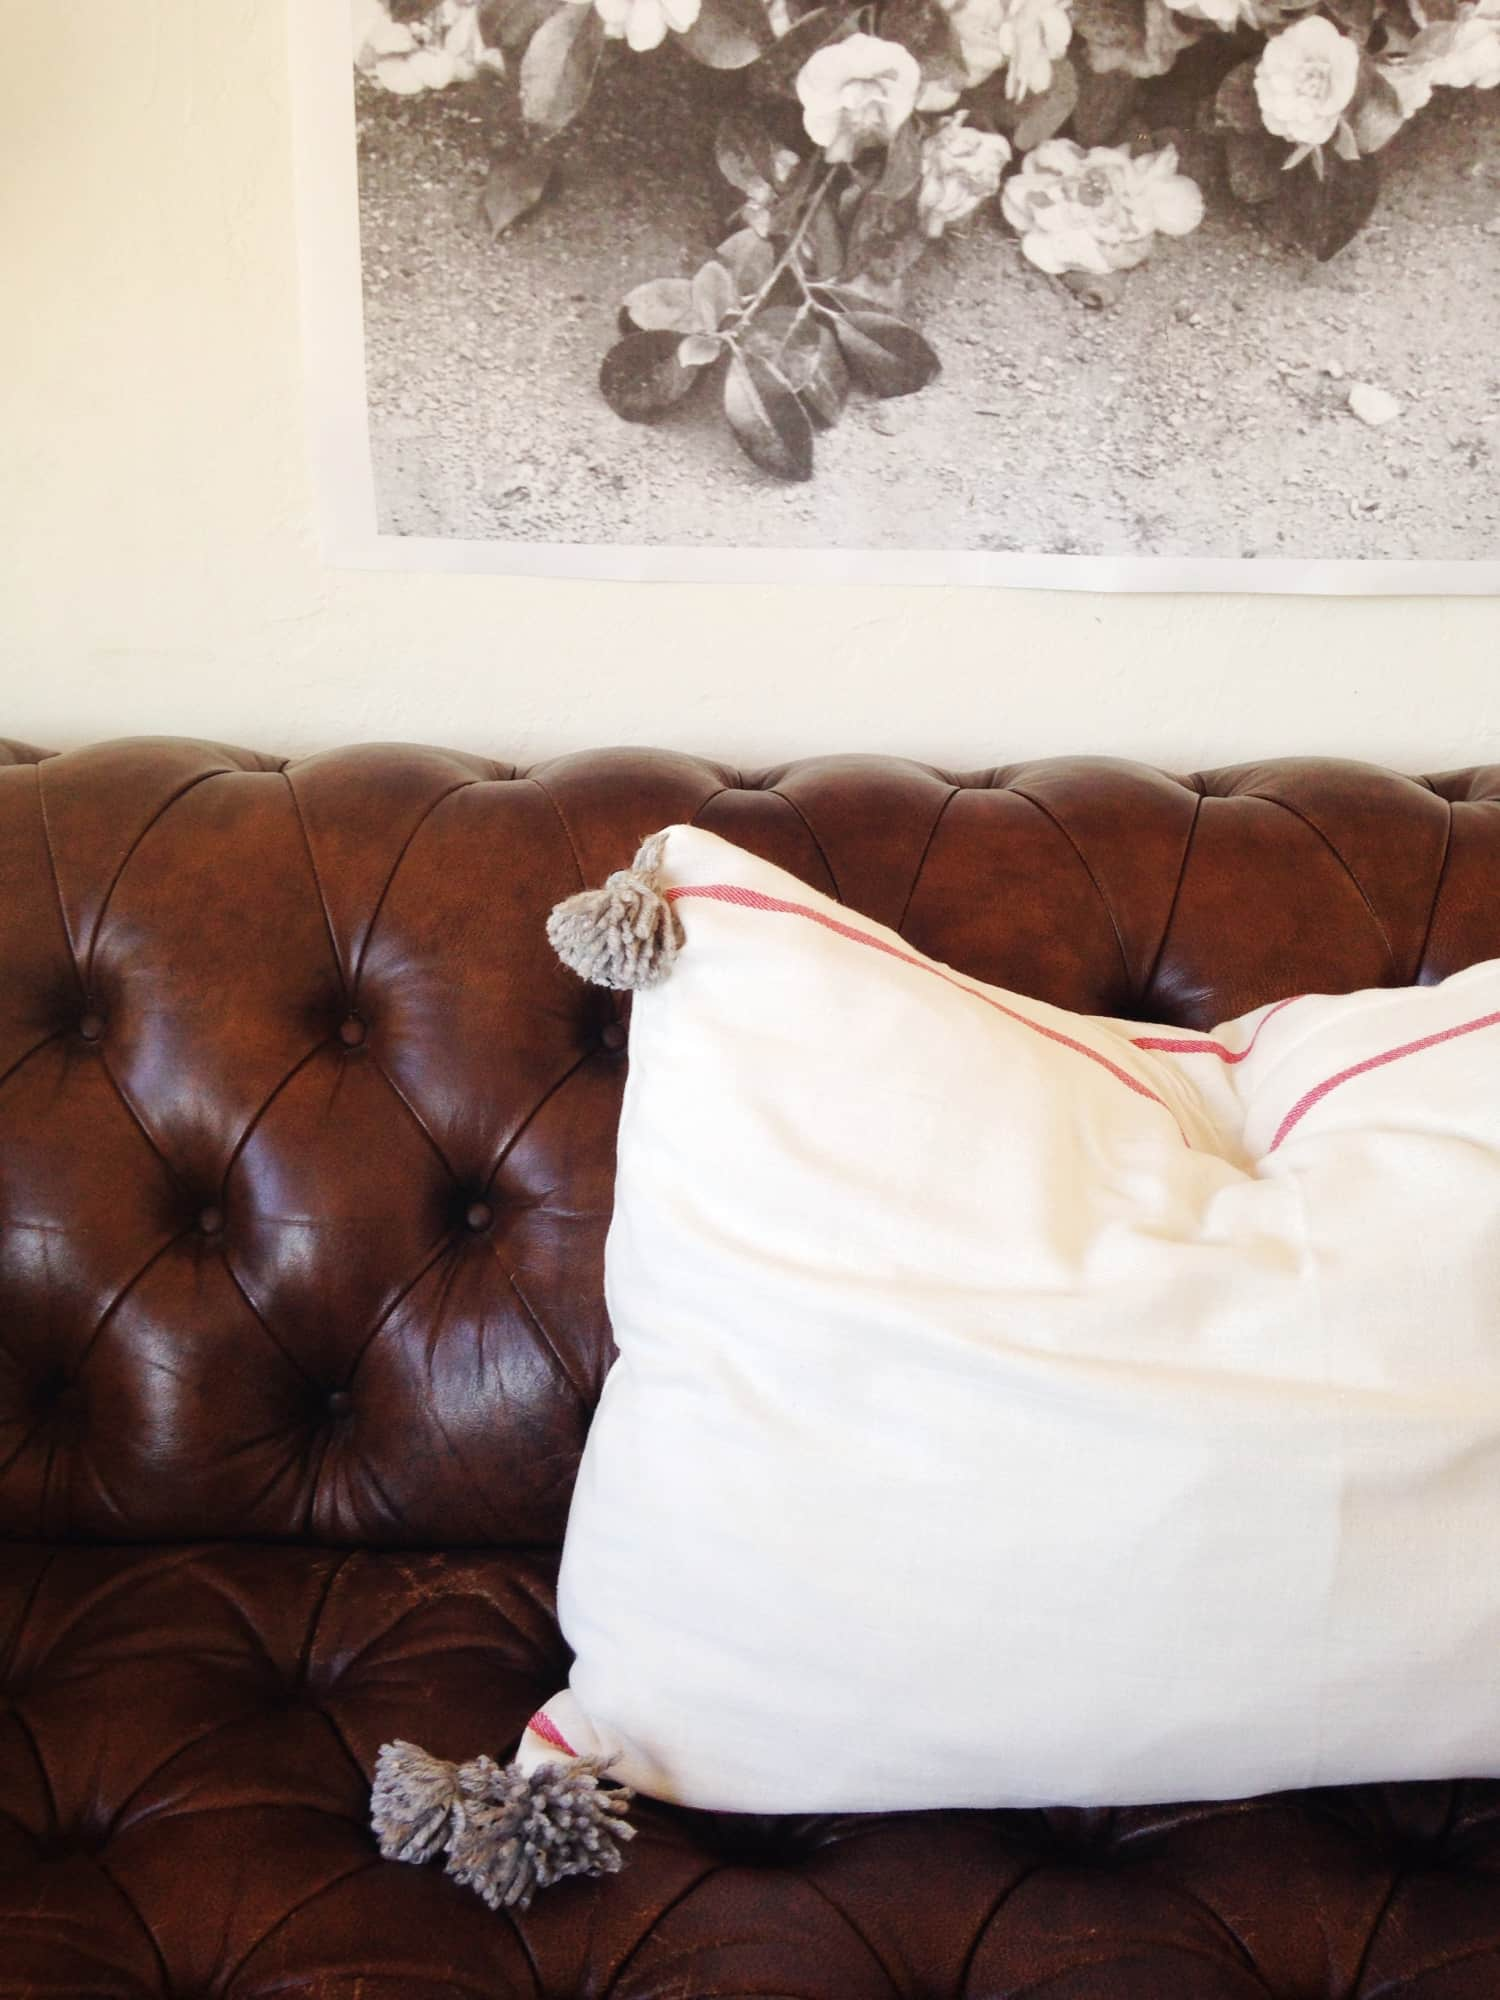 IKEA Hack: How to Make a Moroccan Style Pillow from $2 Dishtowels